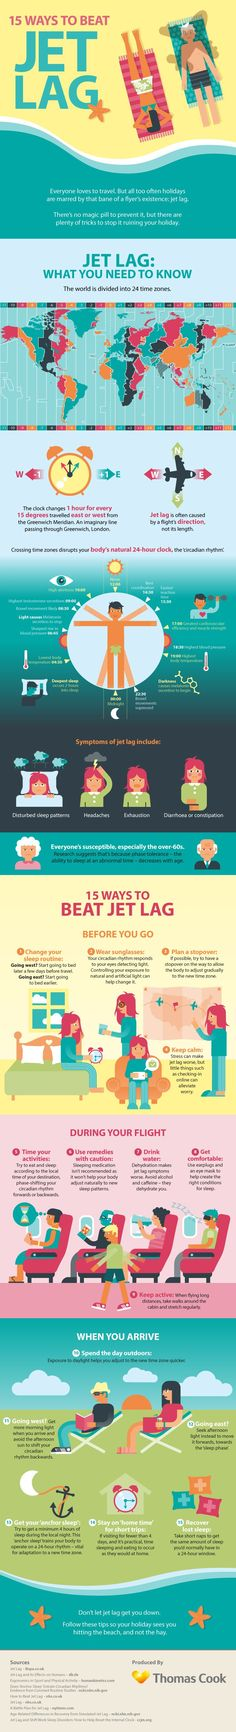 15 Ways To Beat Jet Lag